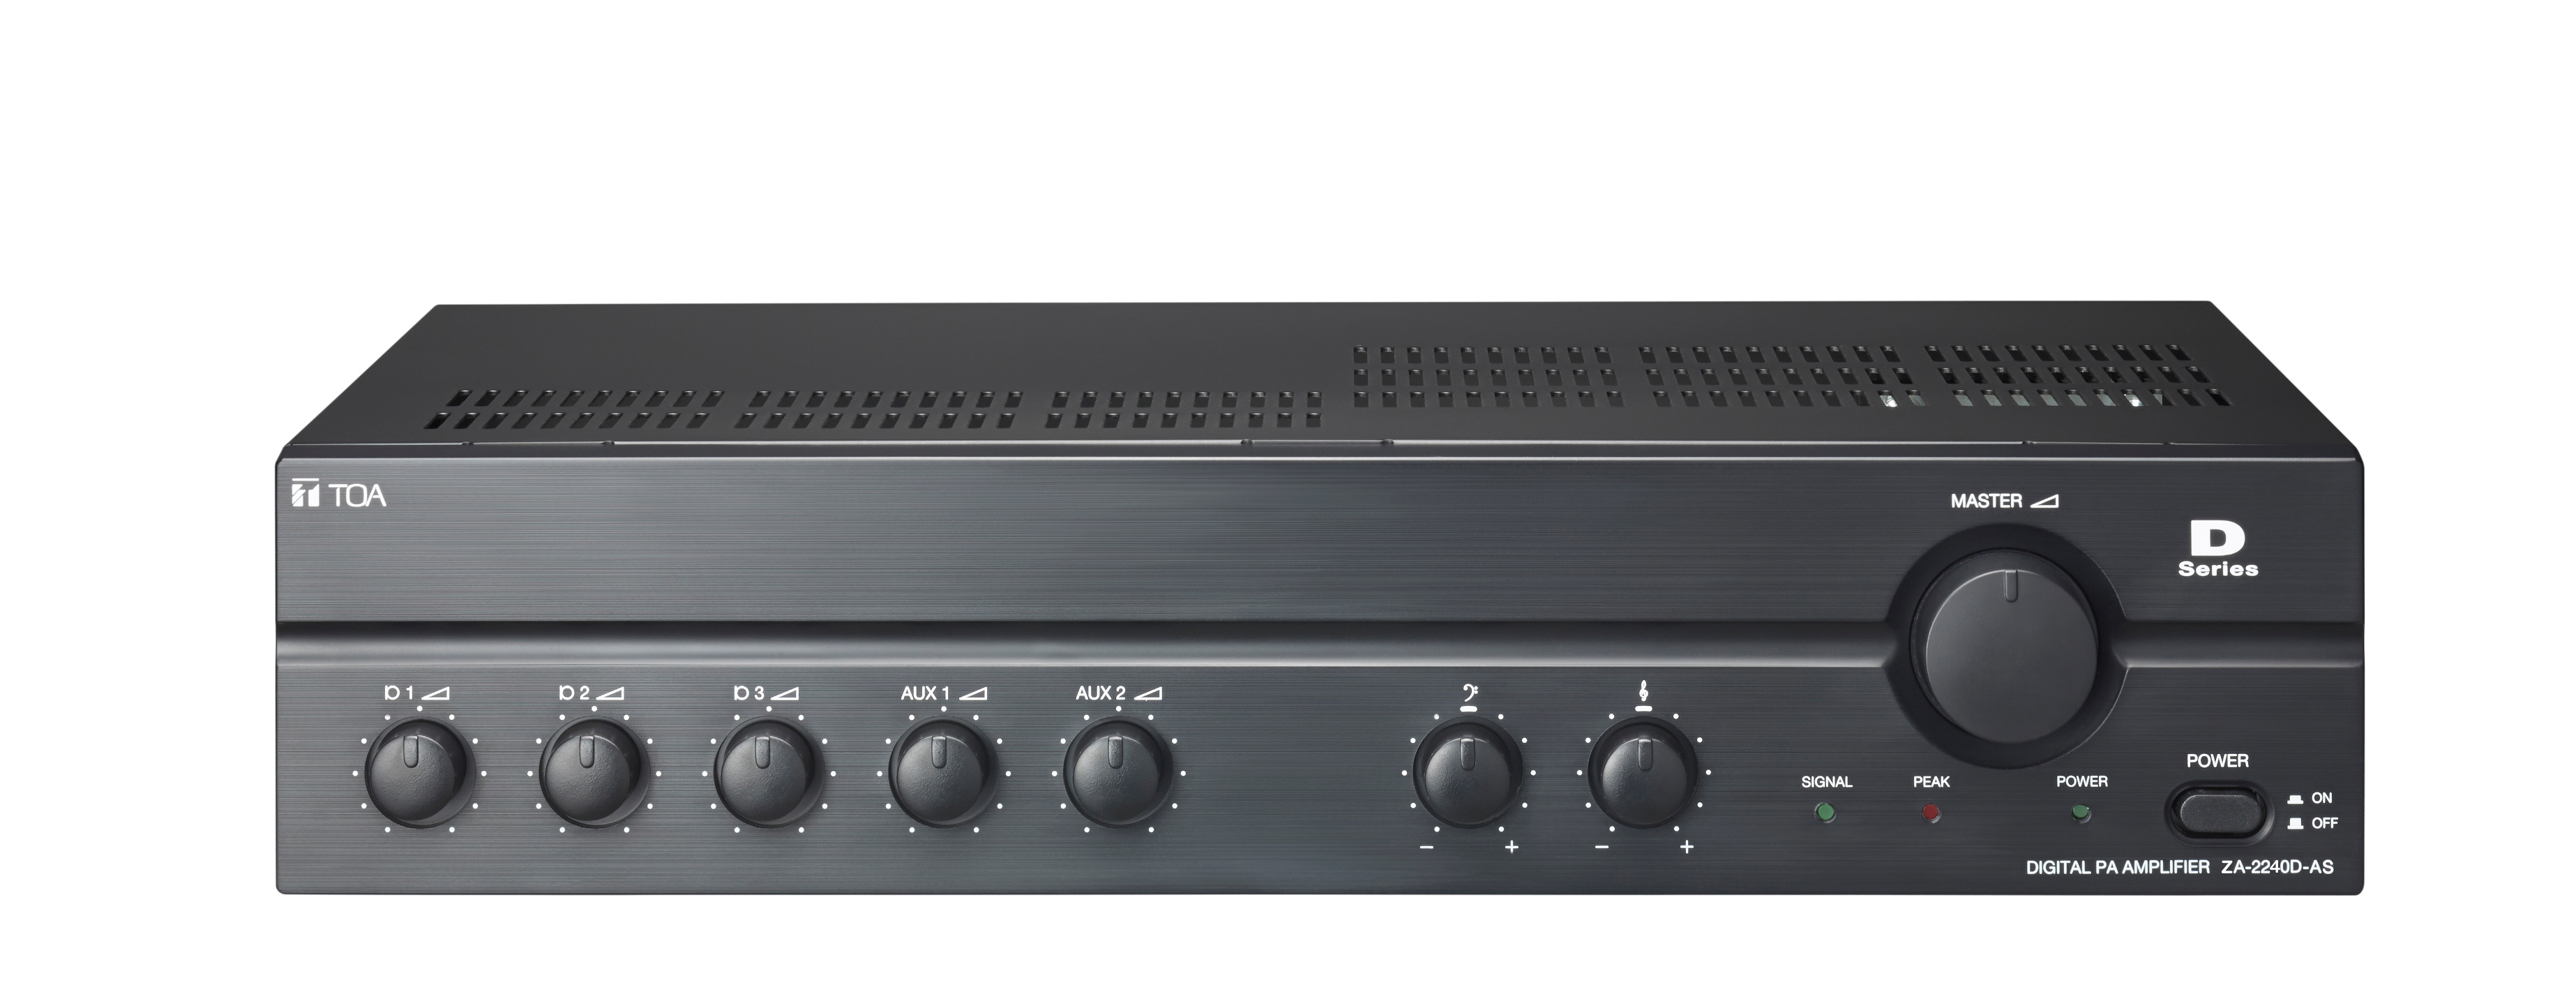 ZA-2240D-AS Digital PA Amplifier